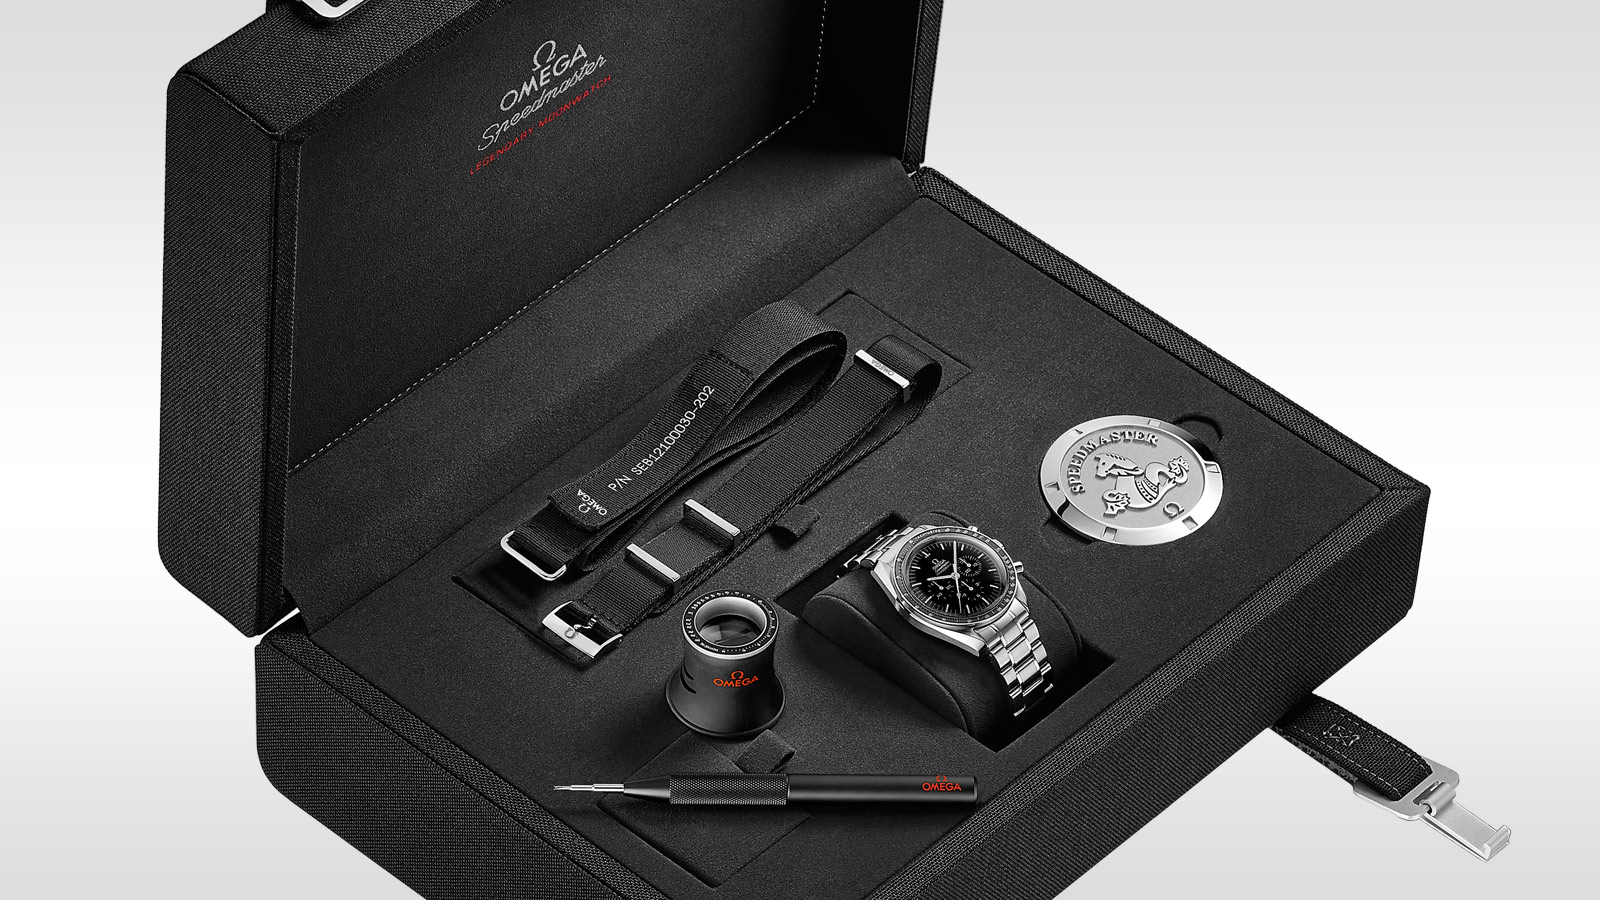 Speedmaster ムーンウォッチ Moonwatch Professional Chronograph 42 mm - 311.30.42.30.01.005 - ビュー 1